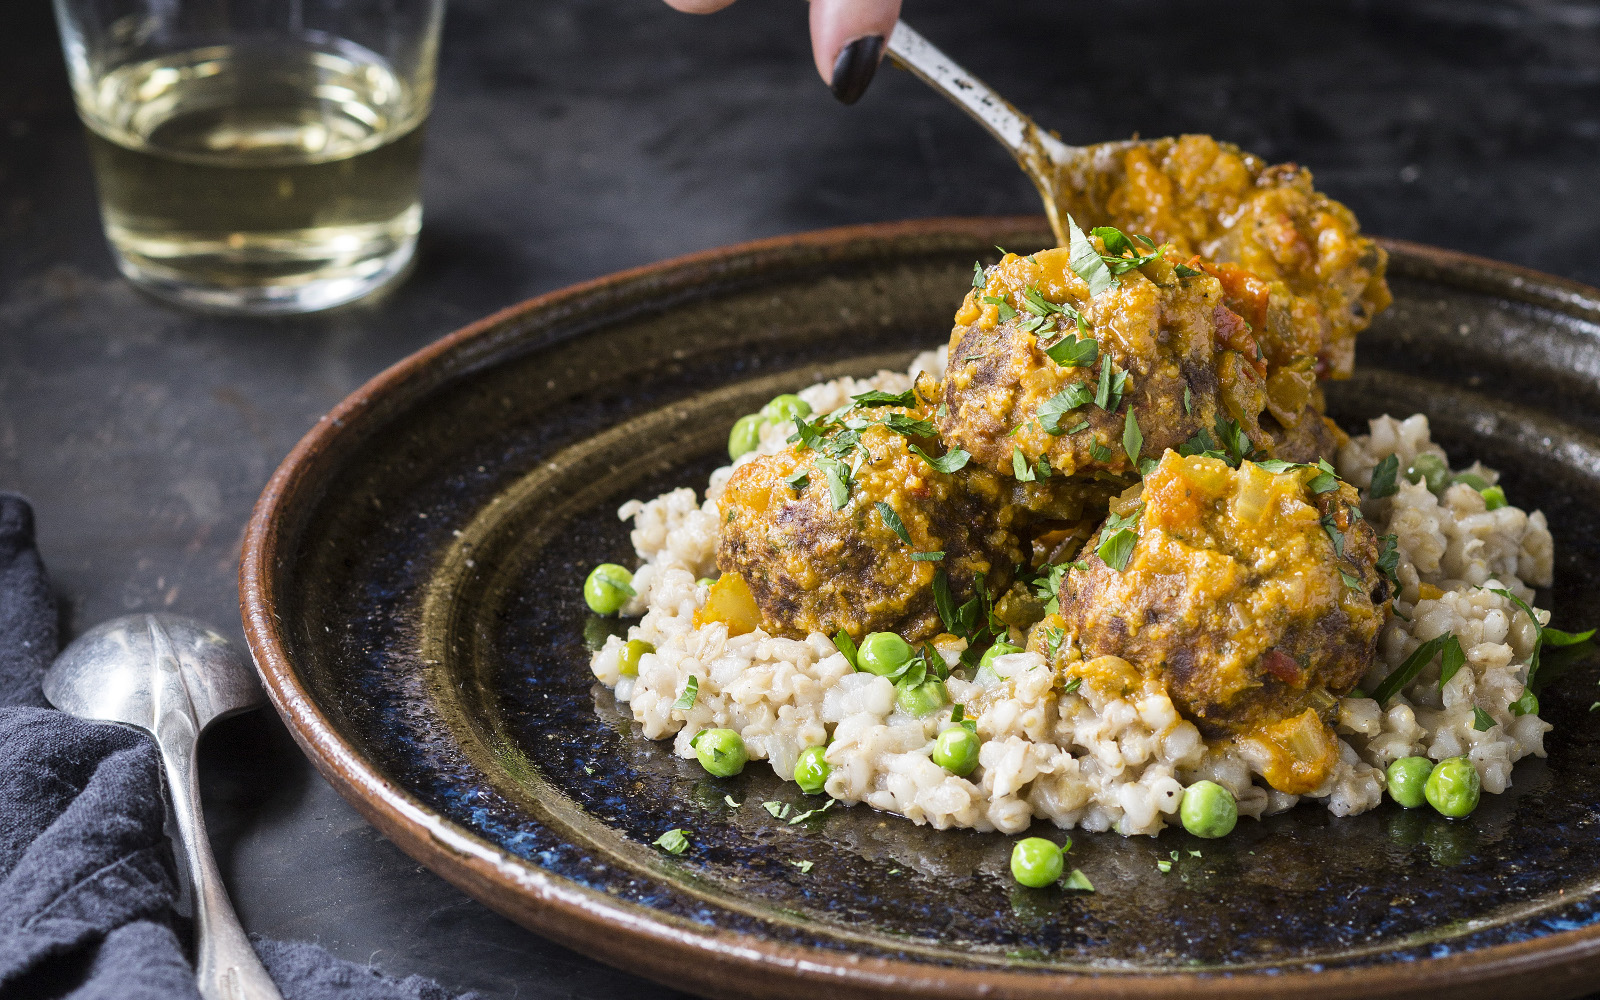 Vegan Gluten-Free Albóndigas con Picada de Almendra: Spanish Meatballs with grains and peas